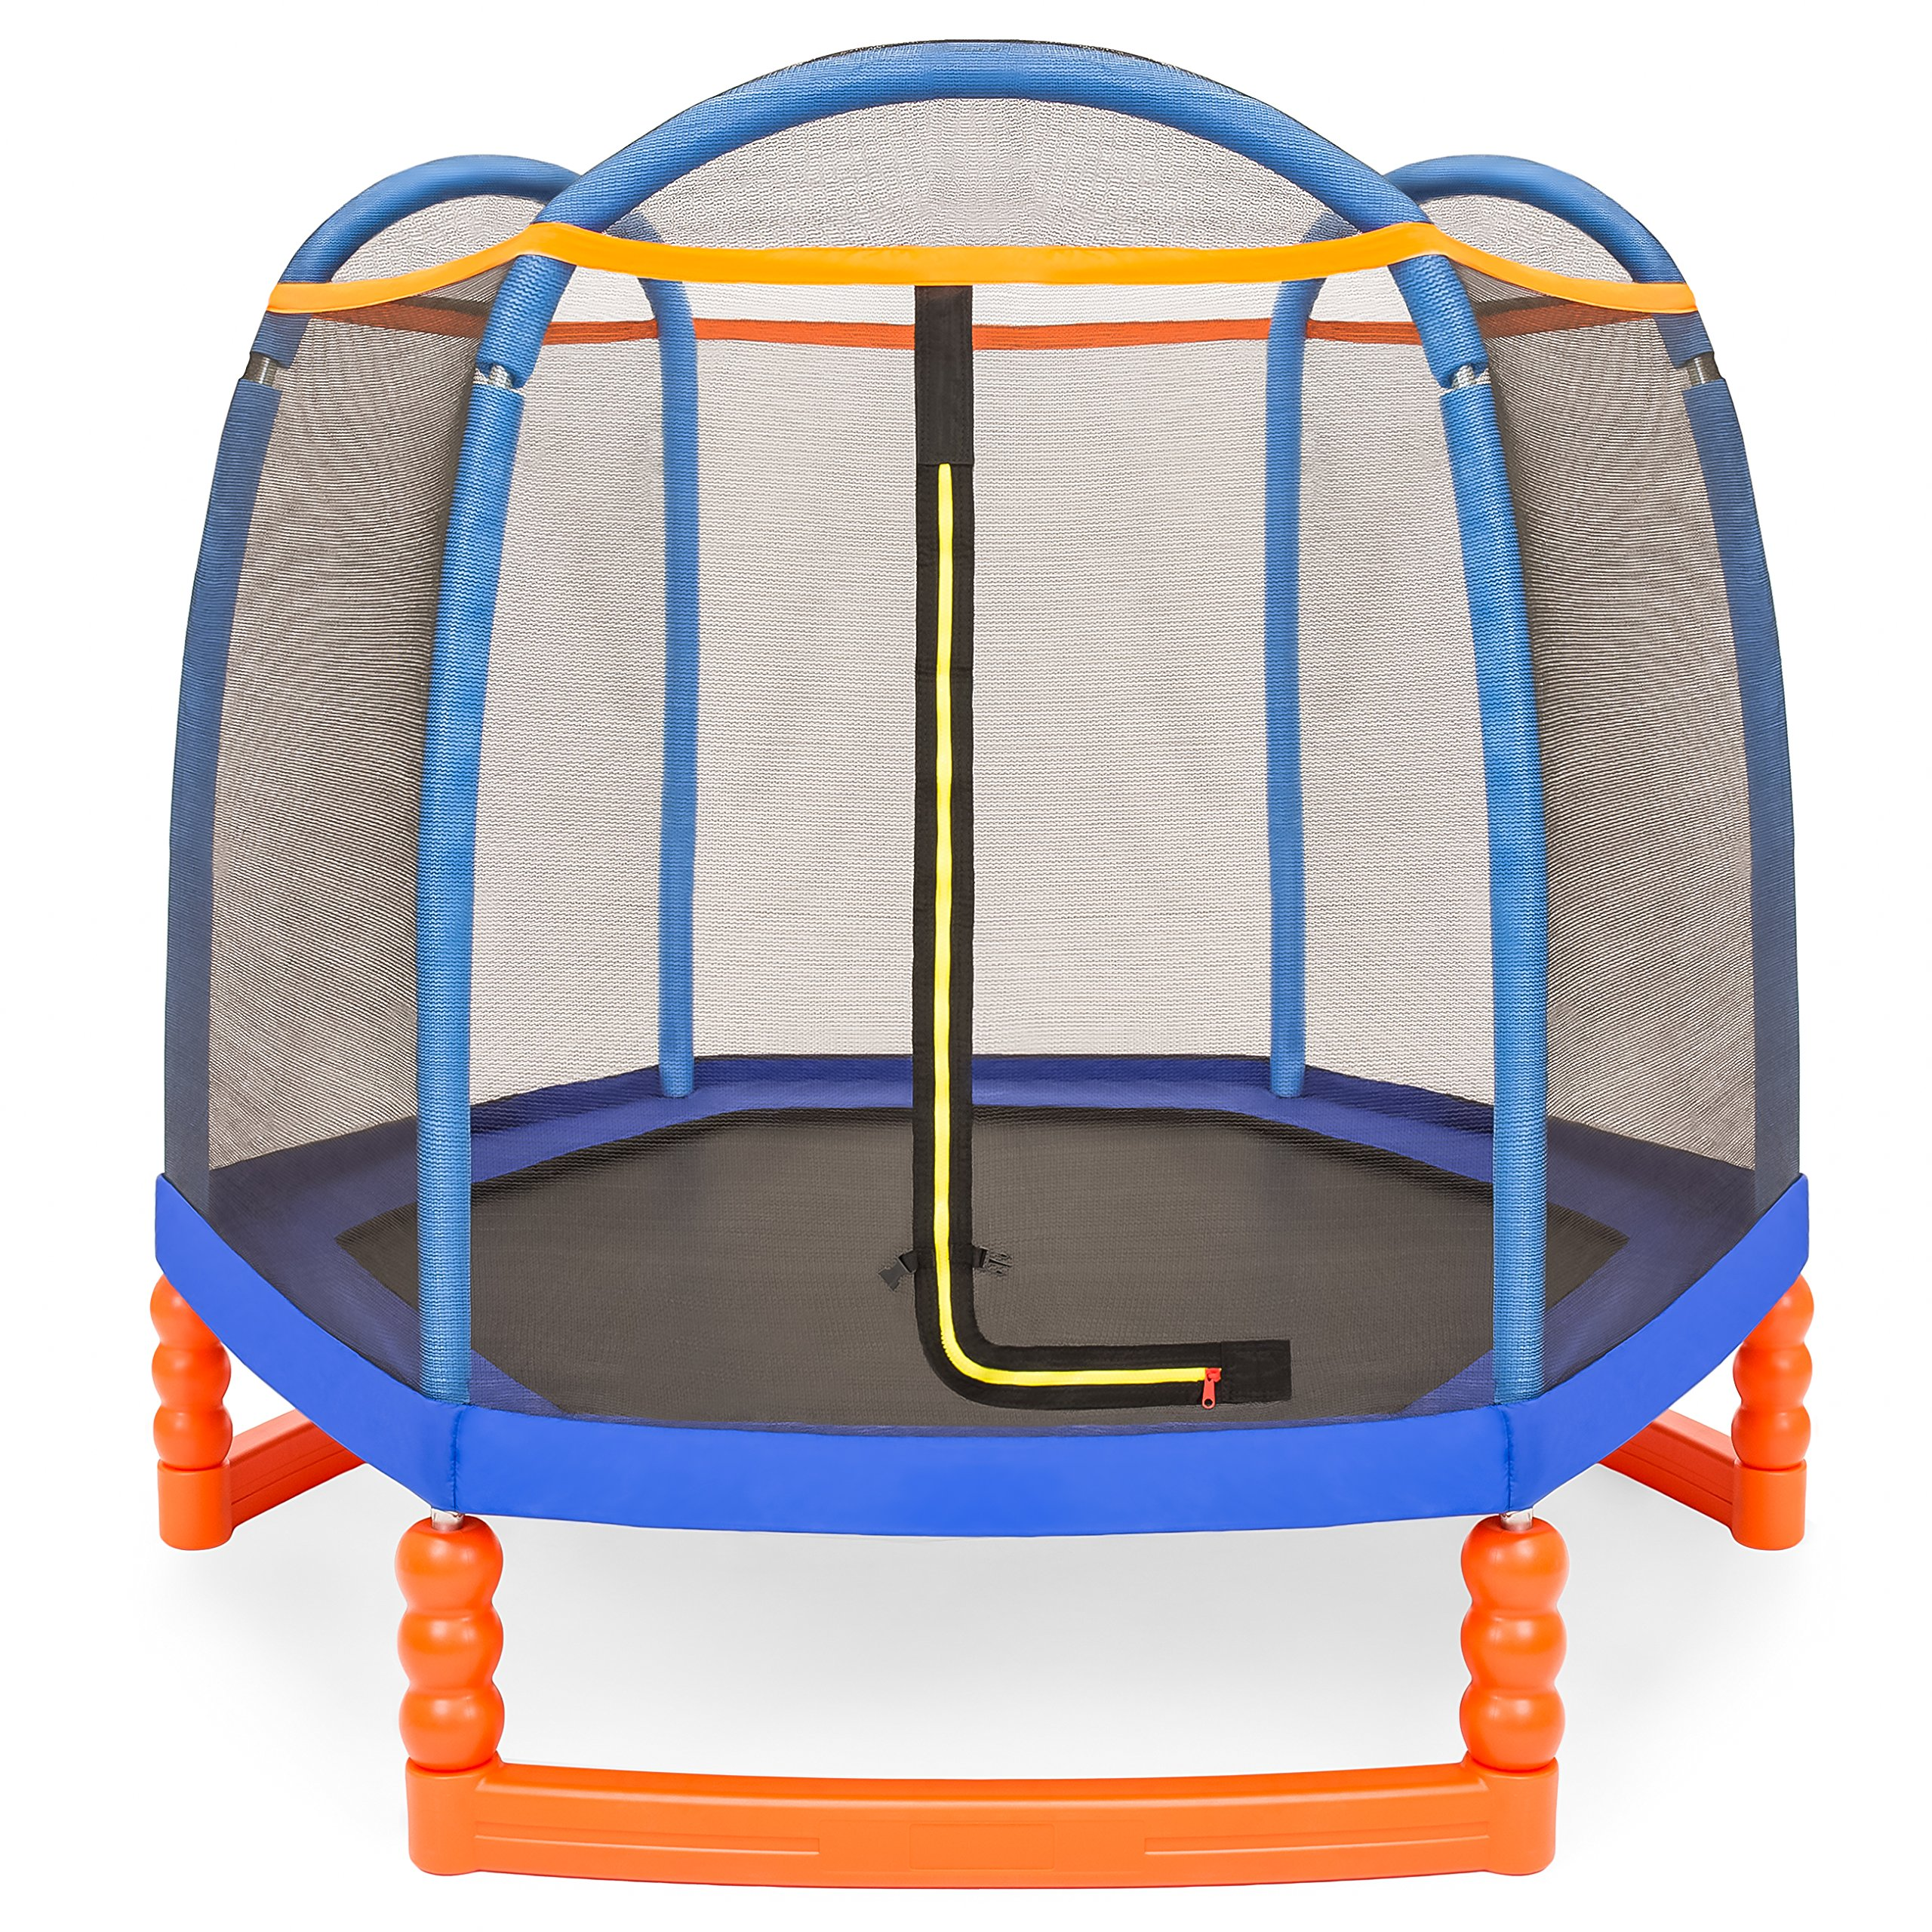 Best Choice Products 7ft Kids Round Mini Trampoline for Indoor & Outdoor Use w/Safety Net Enclosure, Padding, Zipper by Best Choice Products (Image #1)